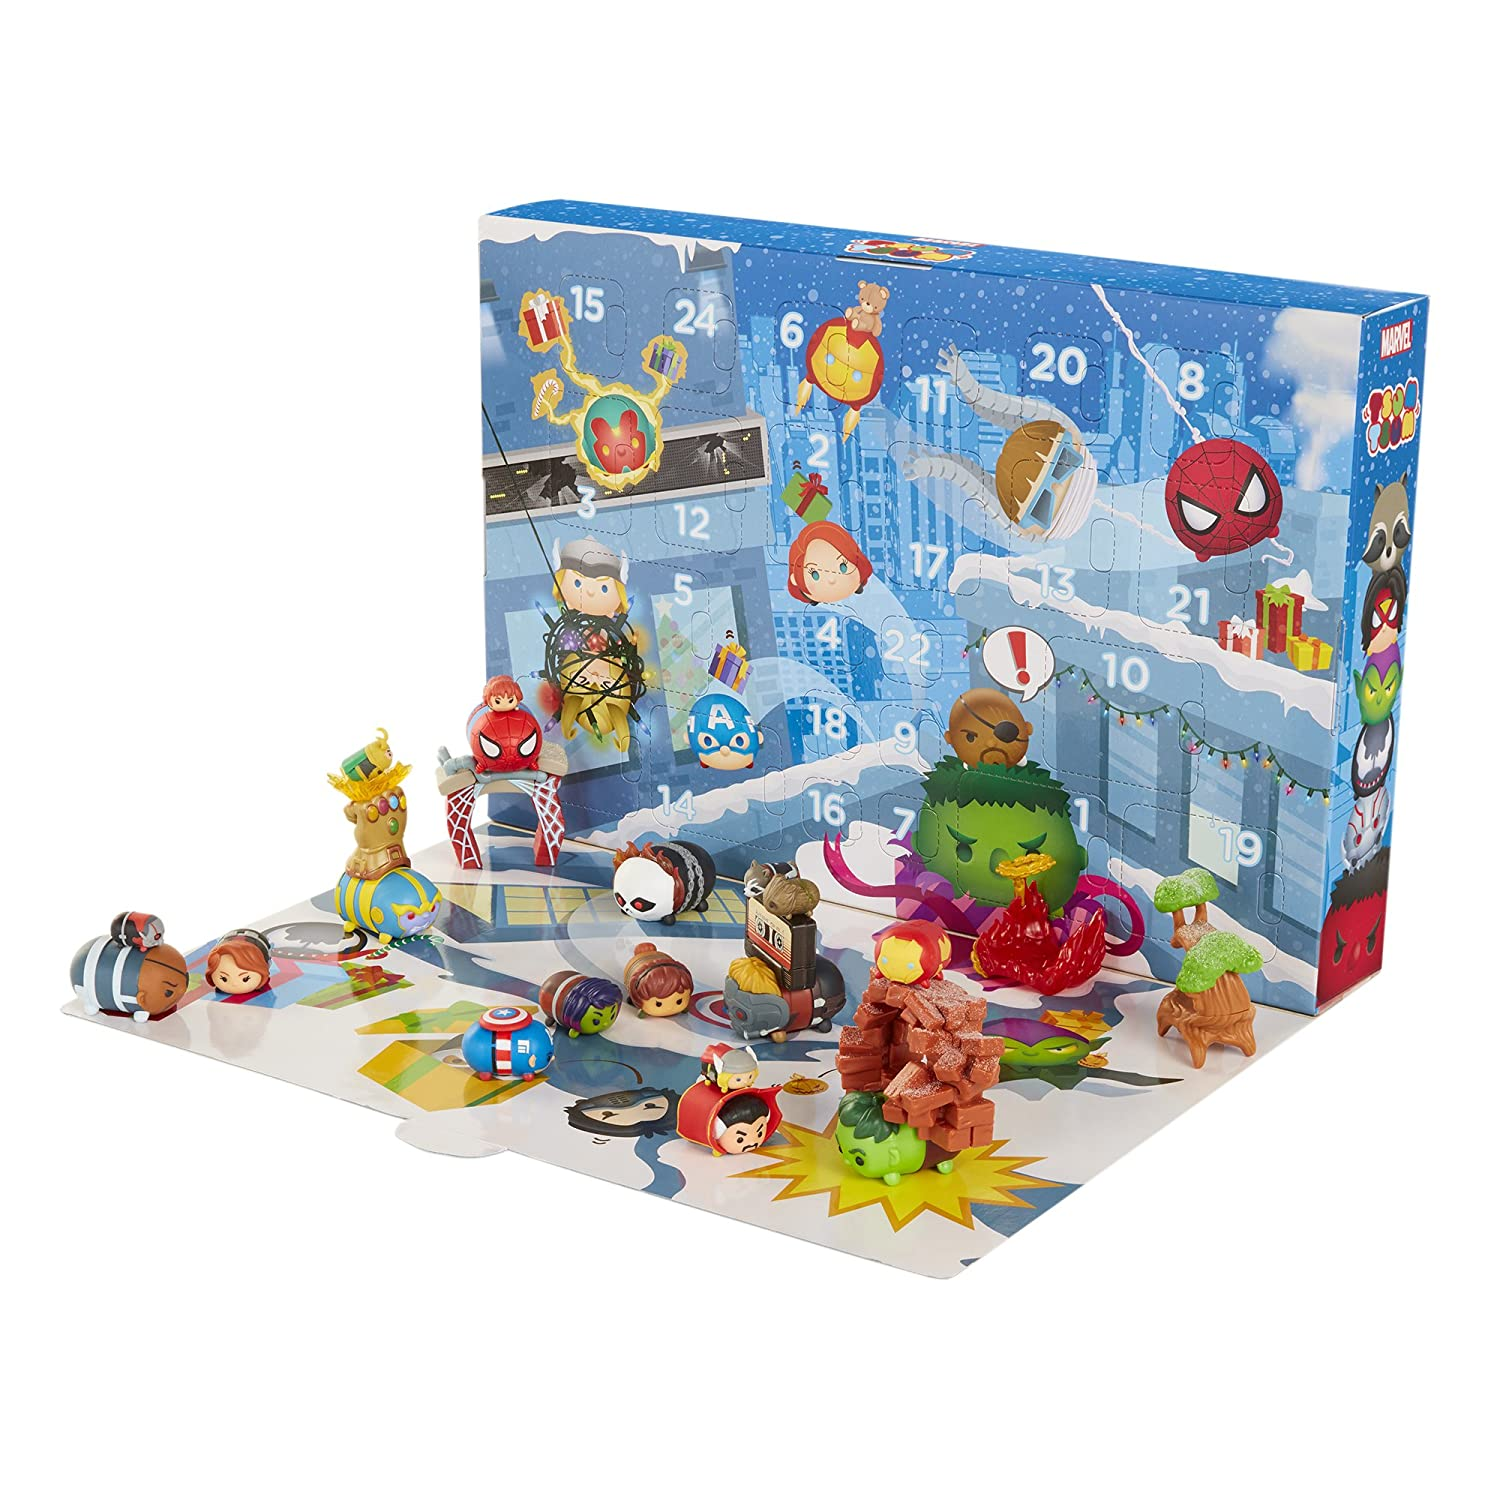 Tsum Tsum Marvel Countdown to Christmas - Calendario de Adviento Jakks 06119